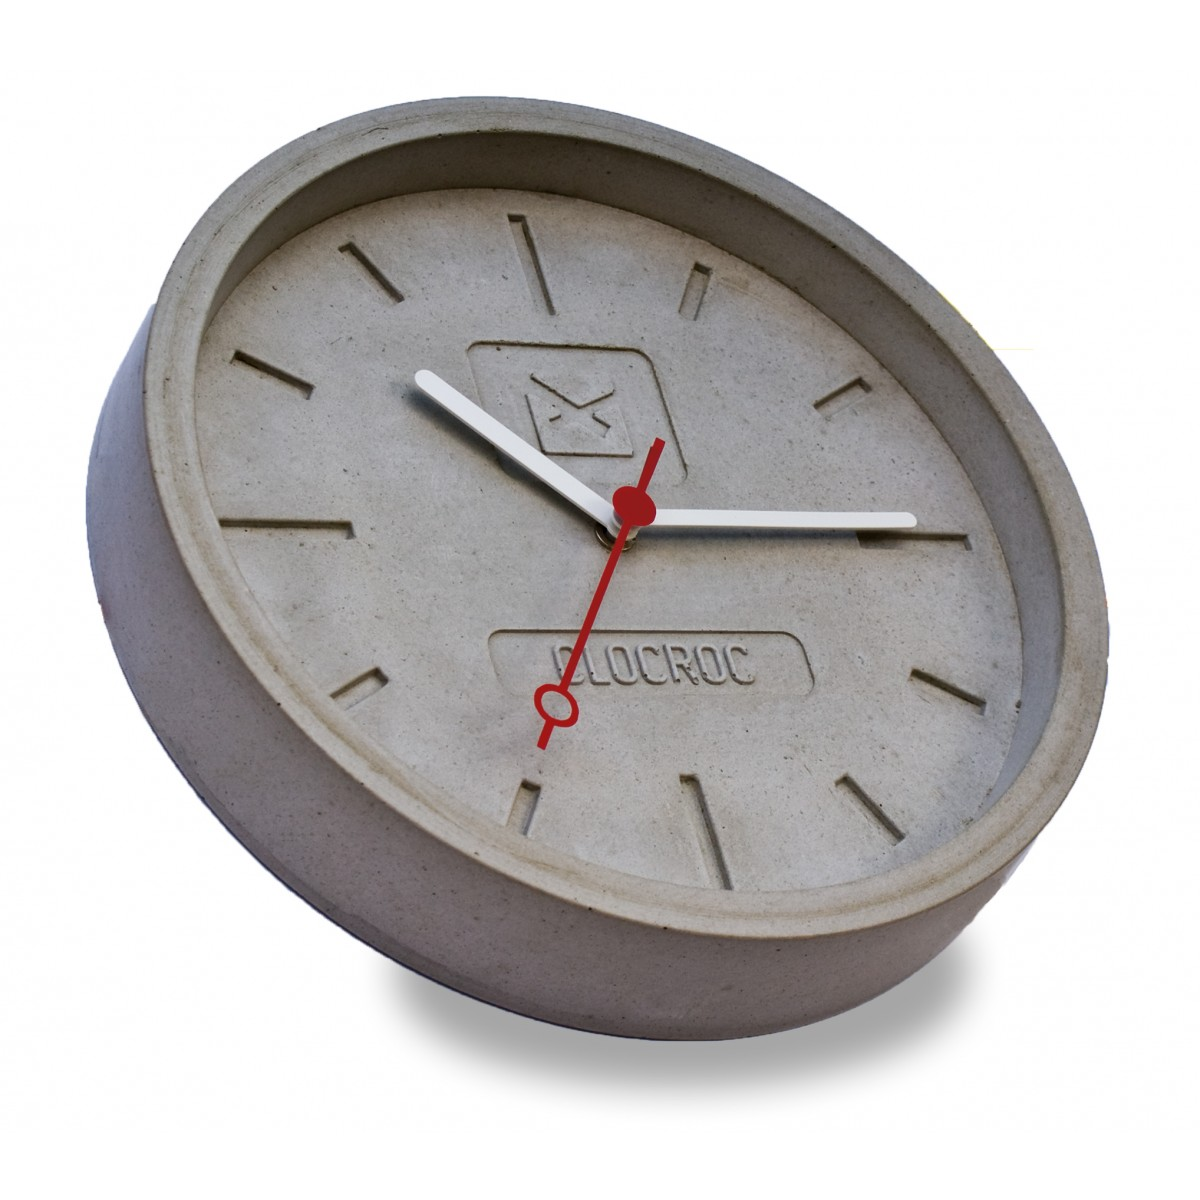 Ambientshop Clocroc Wanduhr aus Beton -  Aviation Big: